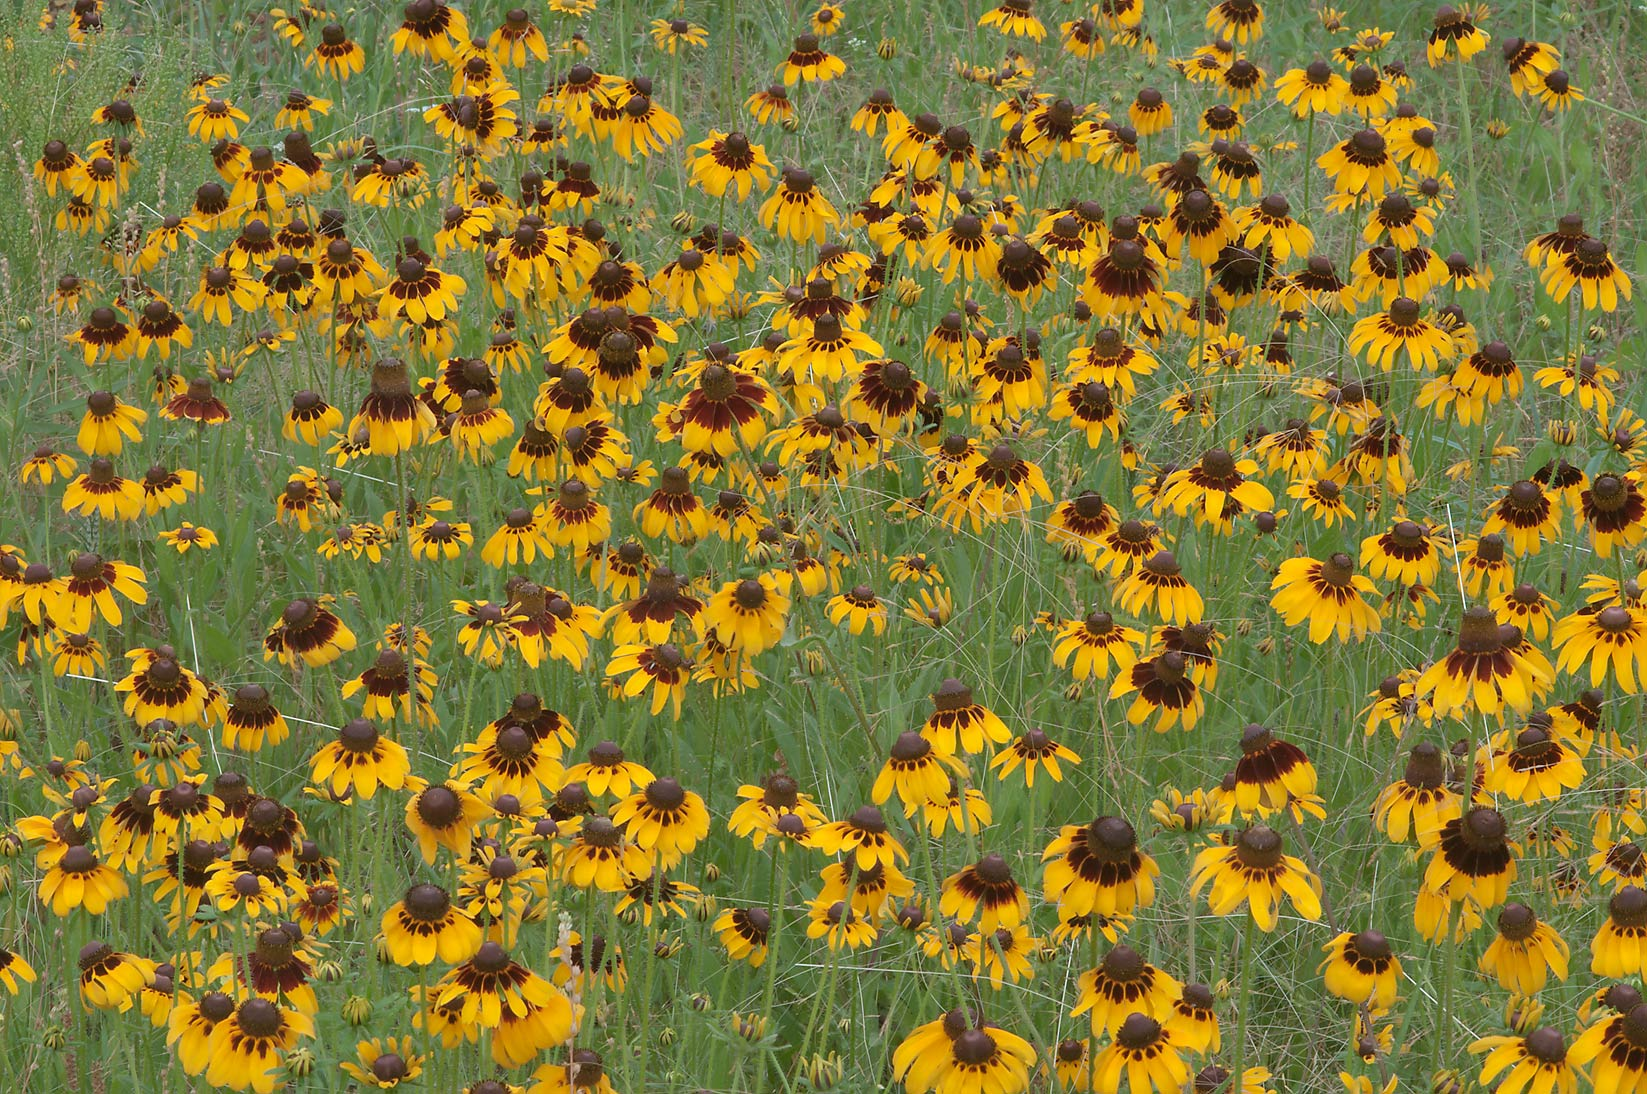 Field of Black eyed susan flowers in Lick Creek Park. College Station, Texas